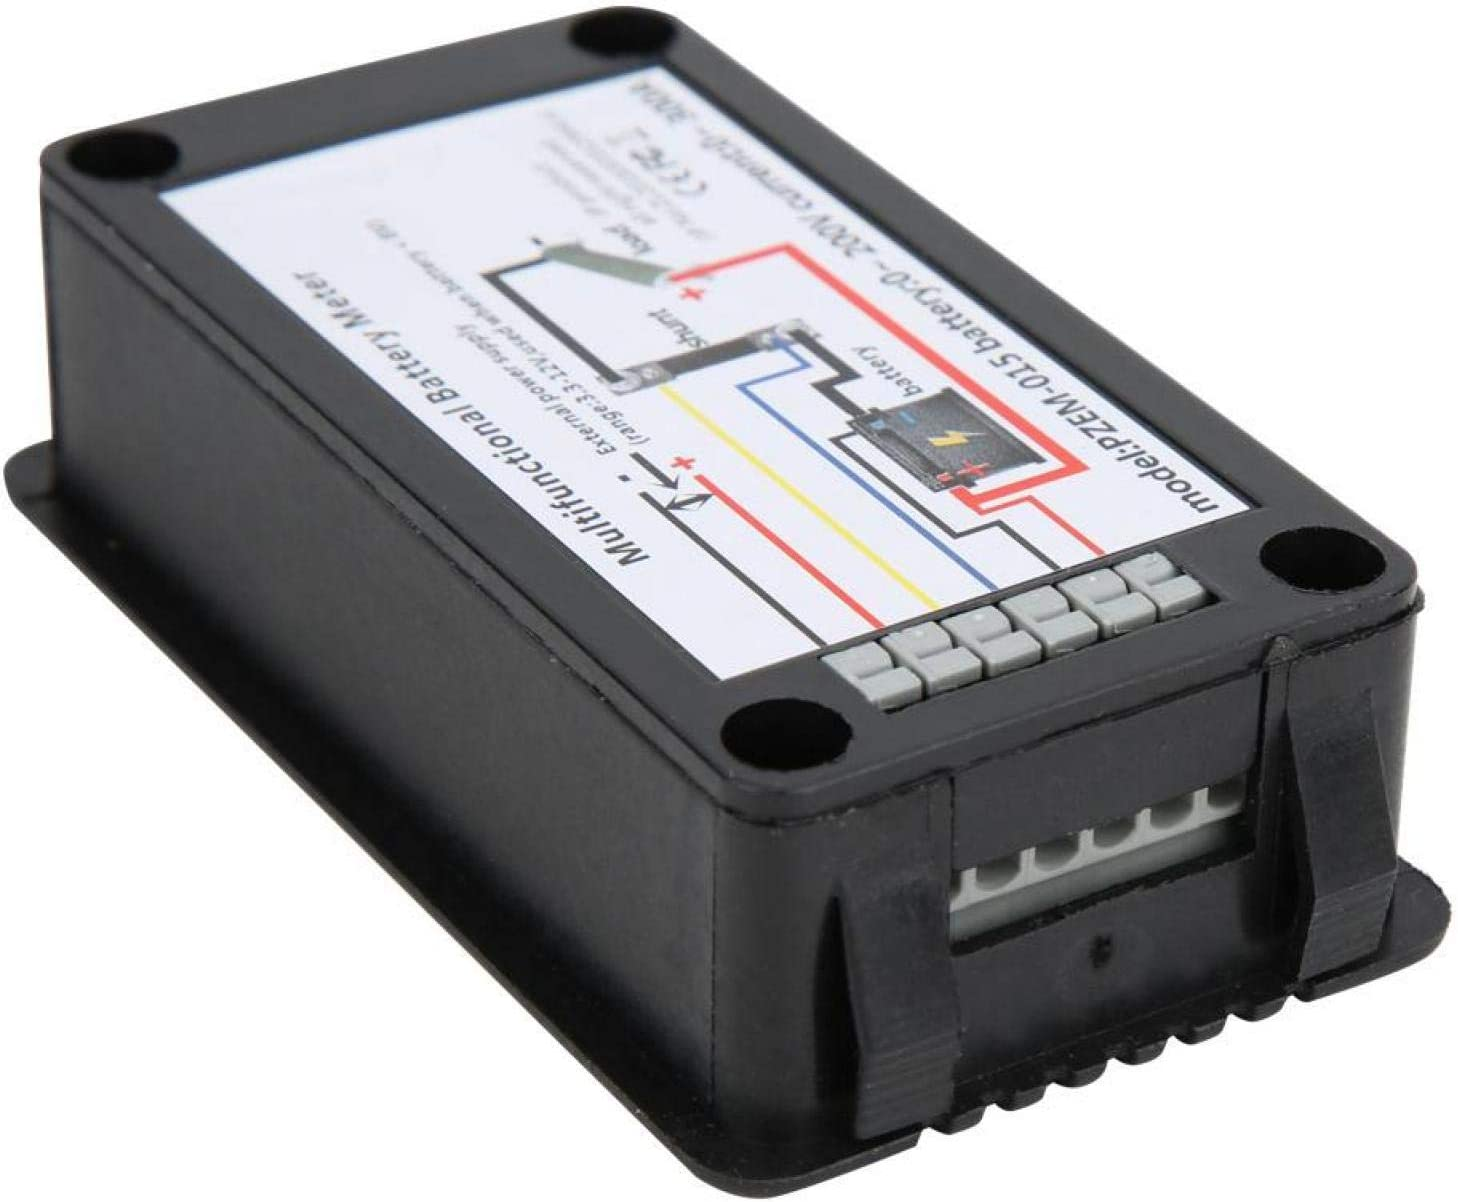 Current Voltage high-Strength Battery Tester Multifunctional for Battery Test(015 English (self-provided shunt))